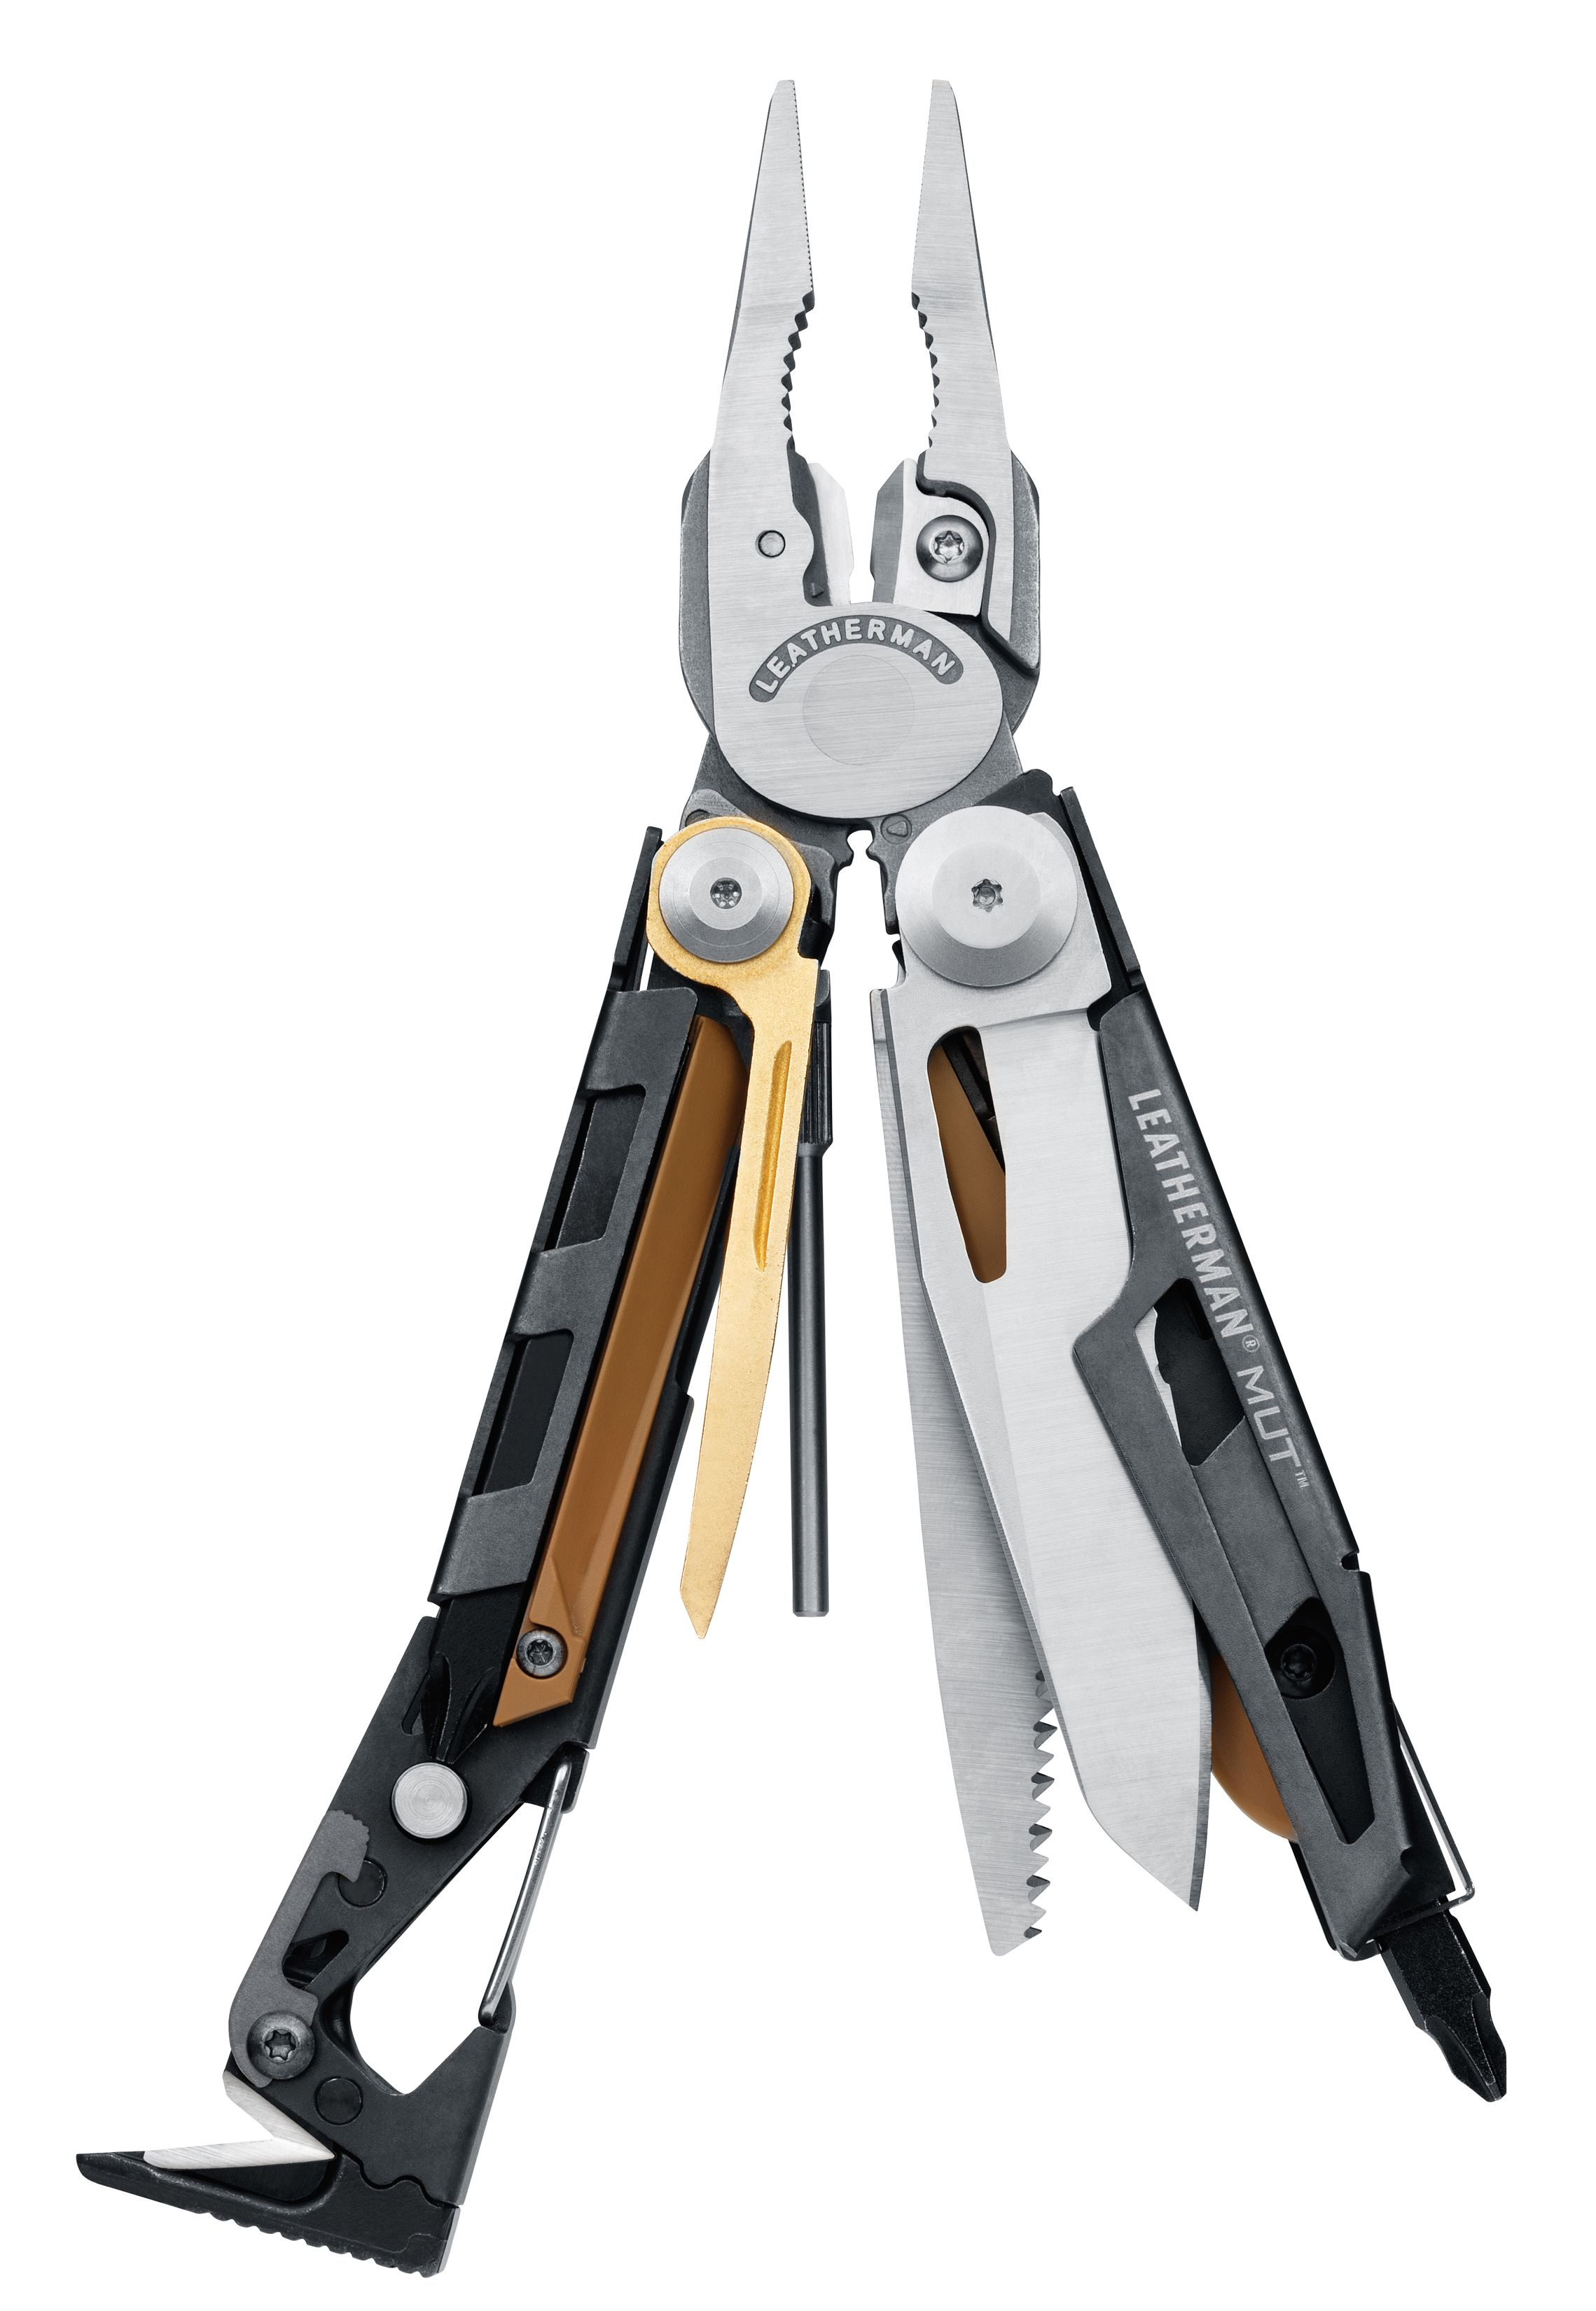 Leatherman MUT AR15 multitool